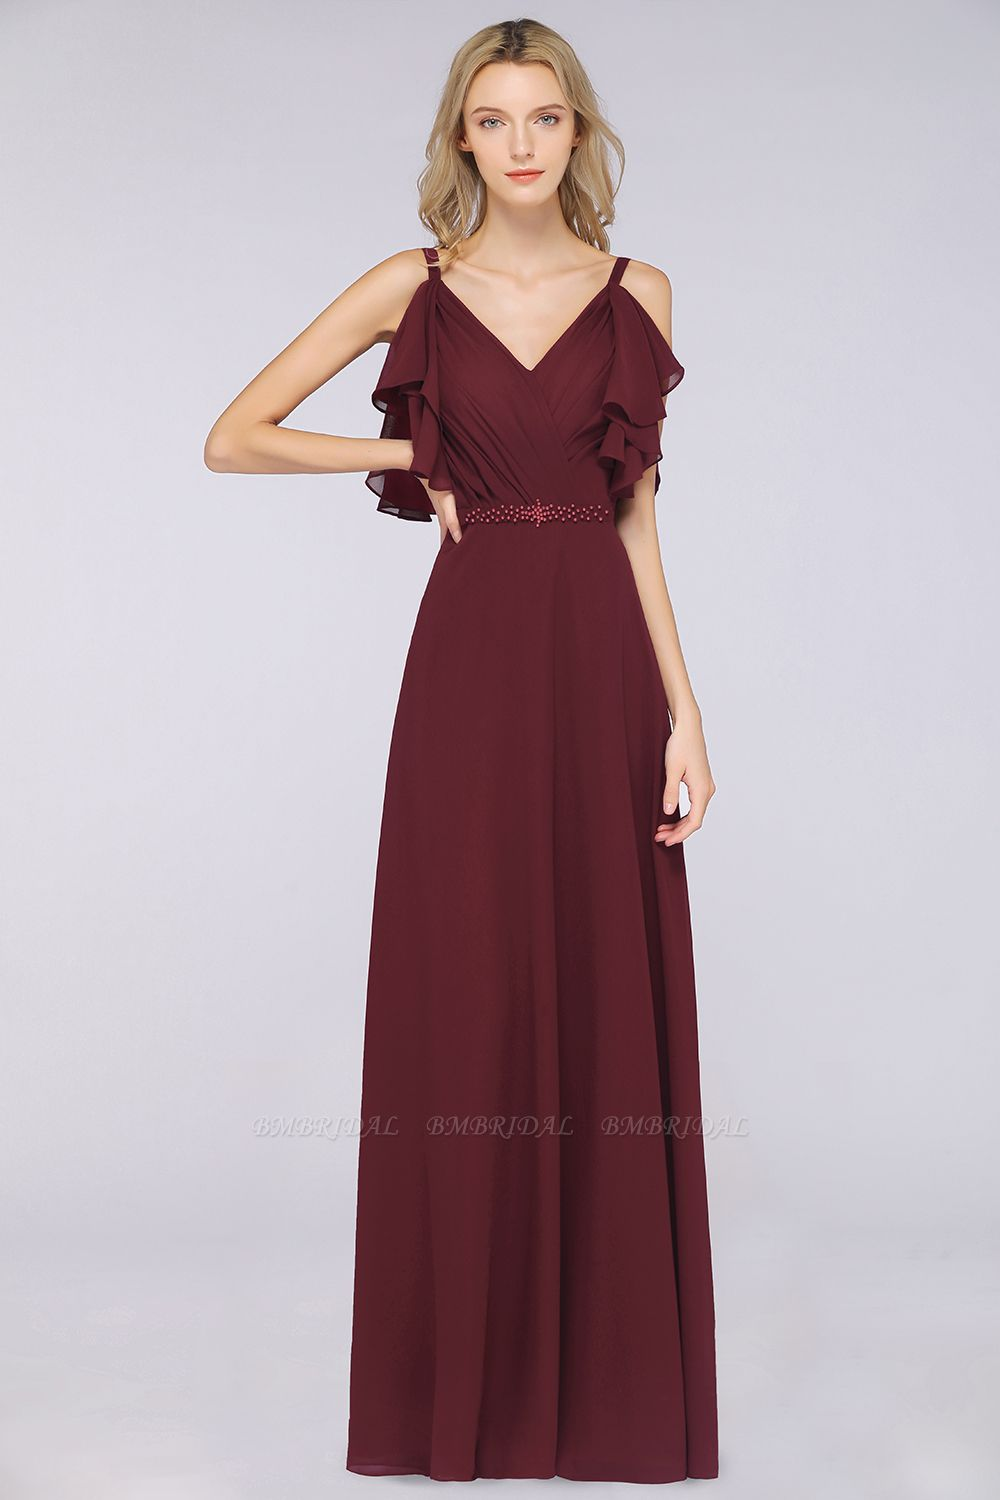 The New Fashion For Modern Weddings: Burgundy Bridesmaid Dresses